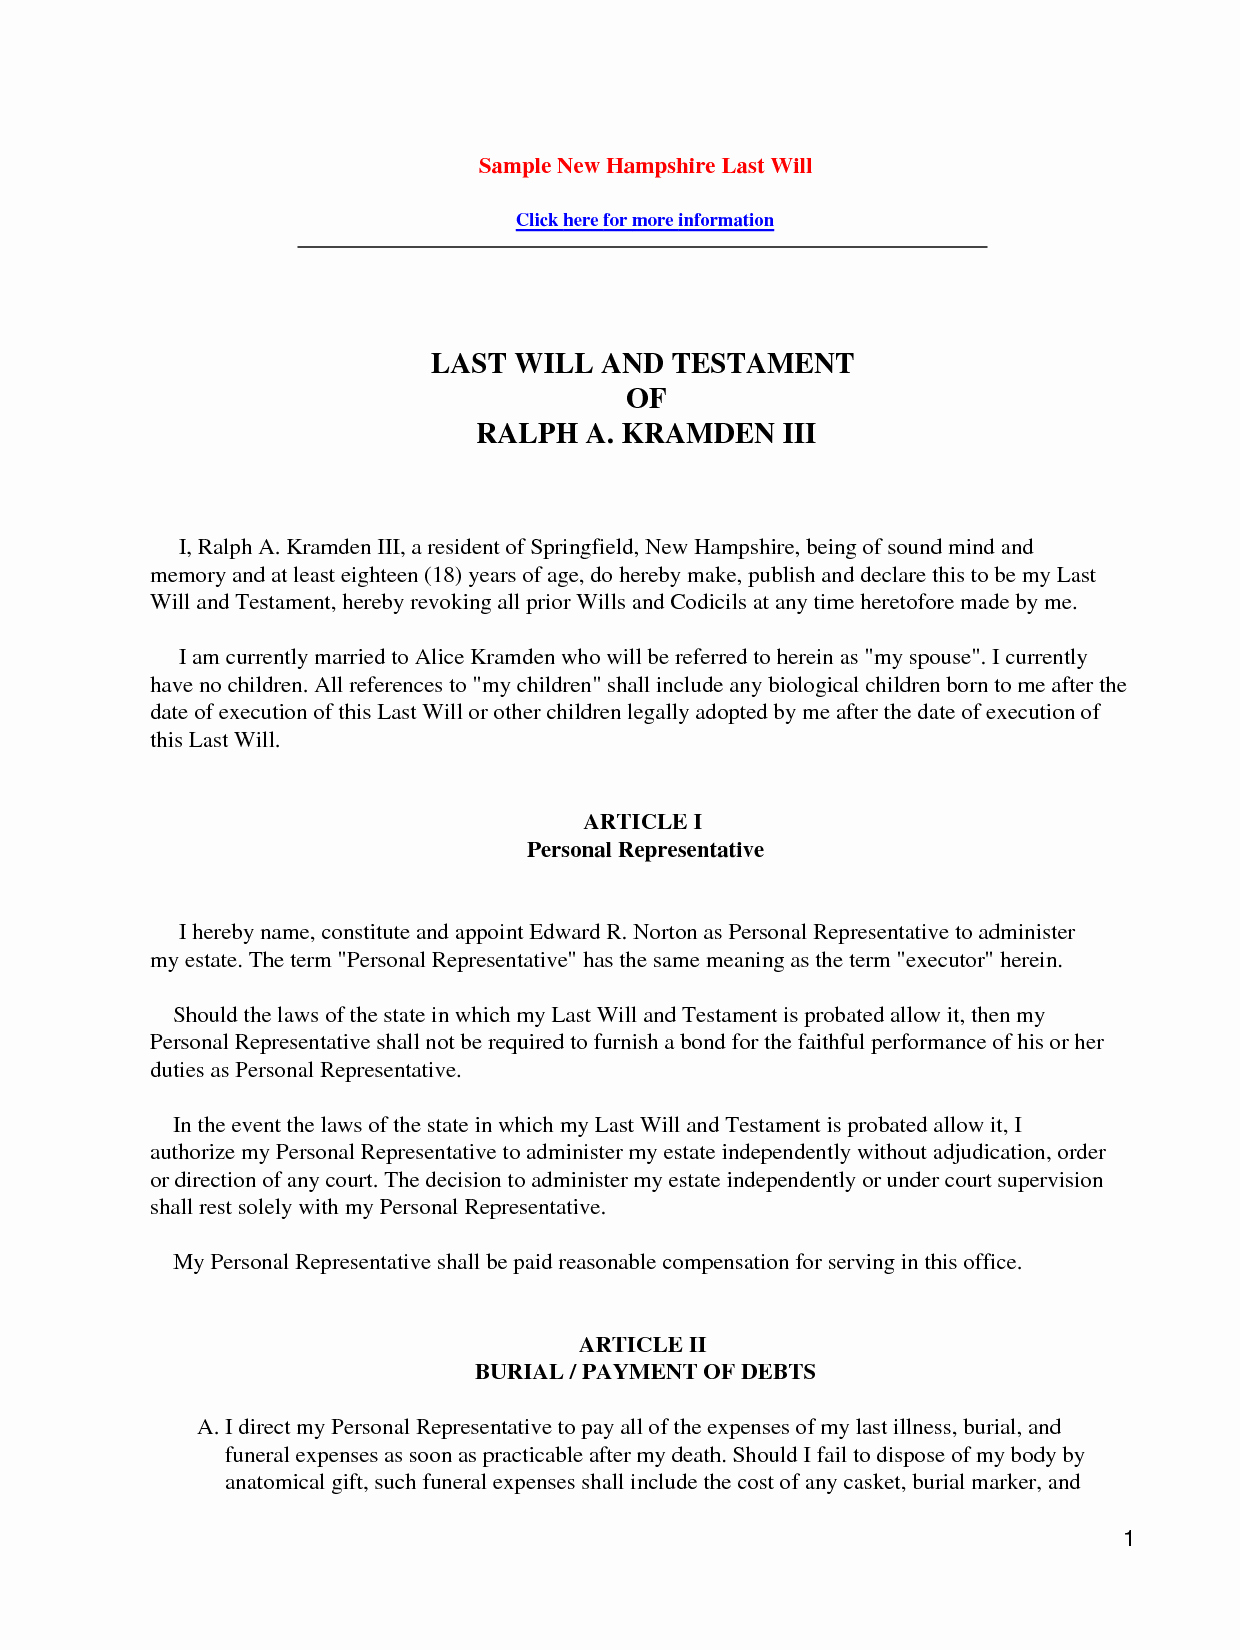 Last Will and Testament Template Microsoft Word Luxury Last Will and Testament Template